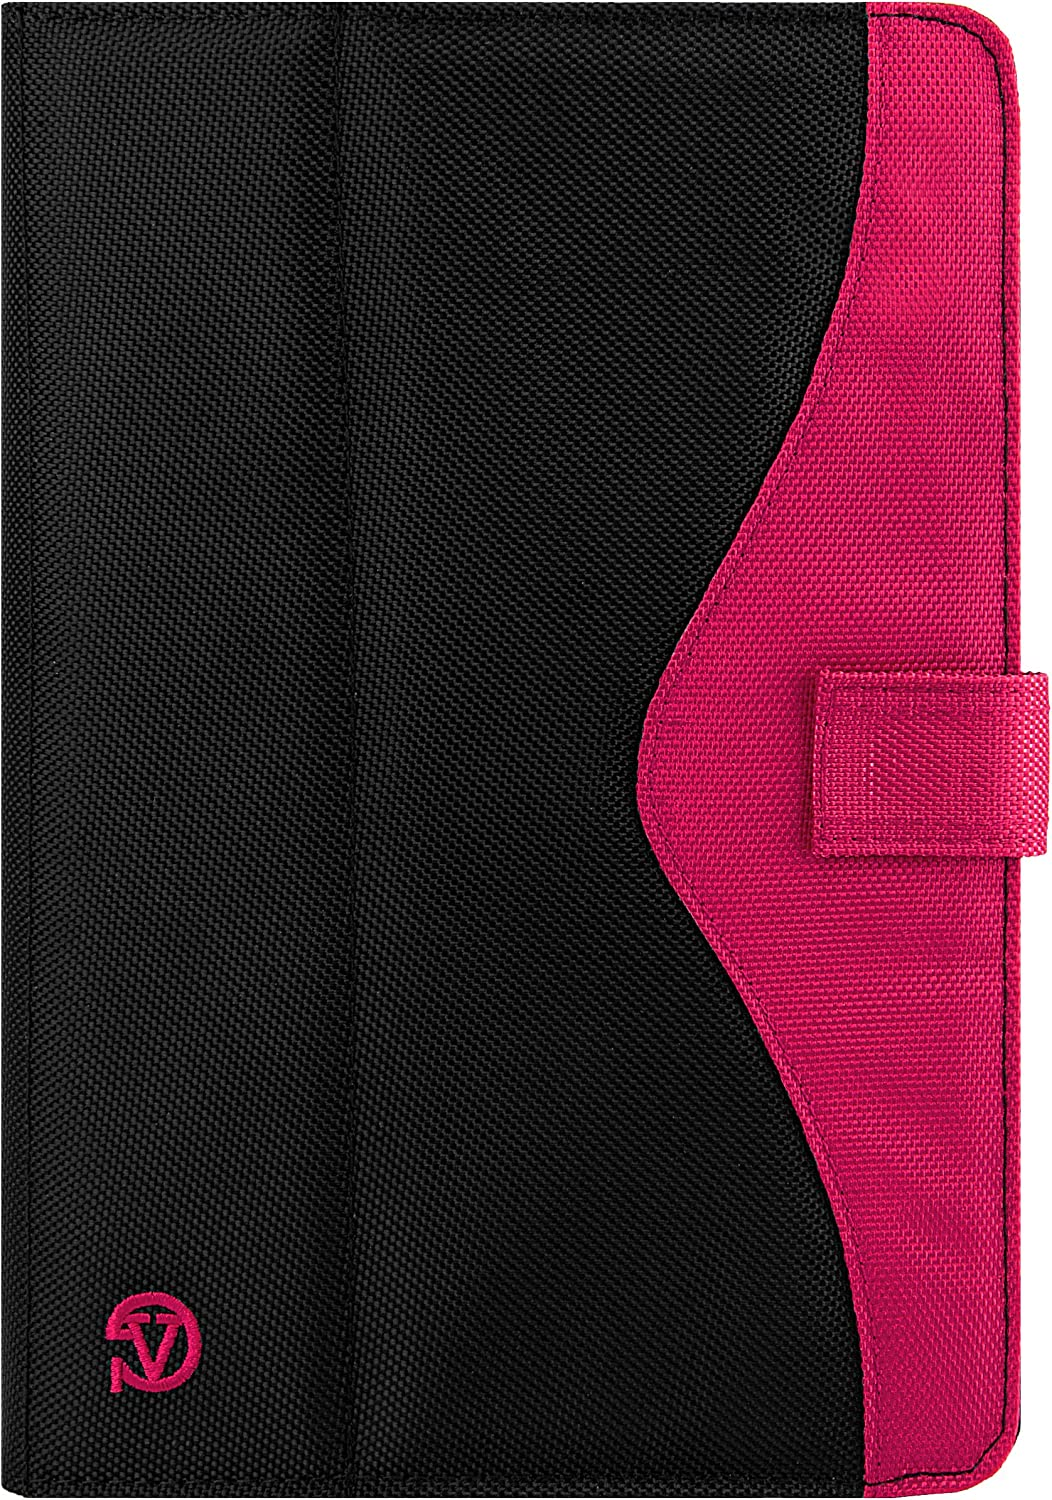 10.1 Inch Universal Tablet Protector Cover Stand Case for Lenovo, Apple, Samsung, Asus, Acer, Magenta